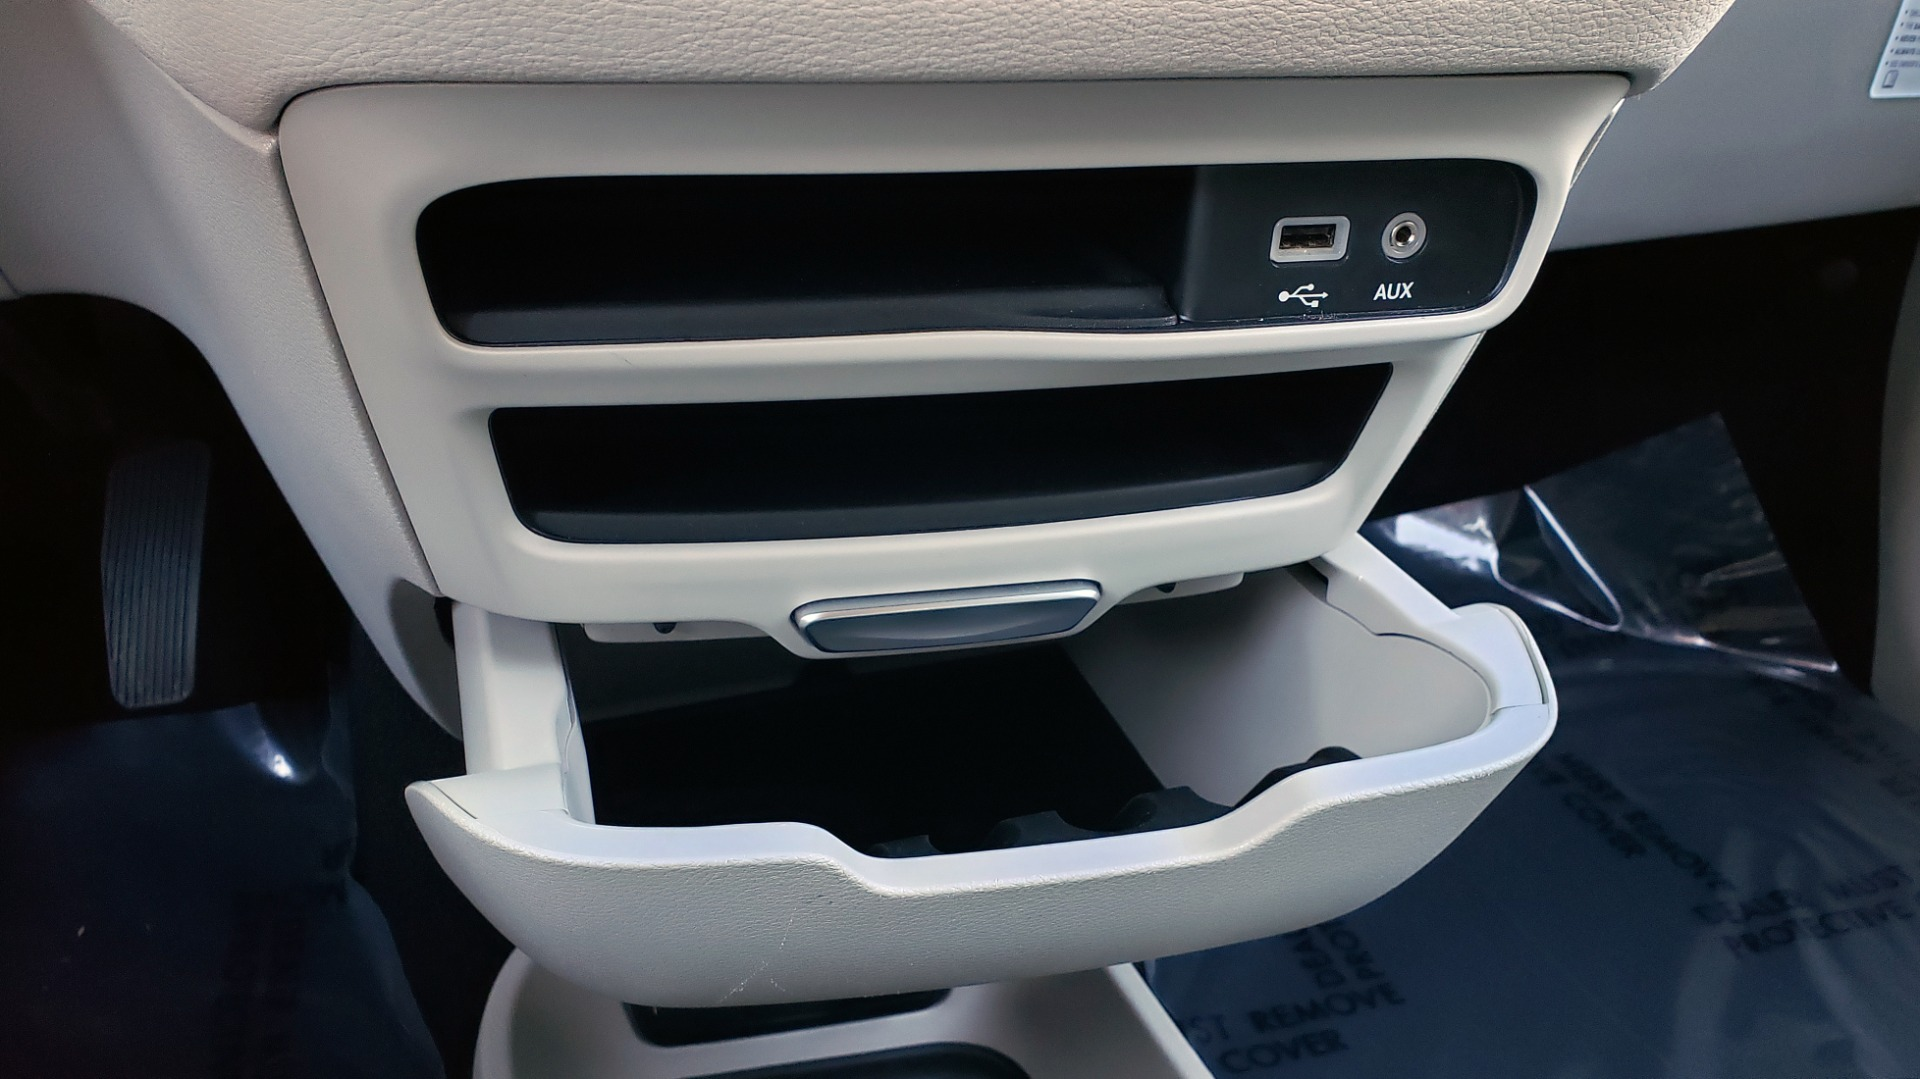 Used 2018 Chrysler PACIFICA LIMITED / 3.6L V6 / NAV / PANO-ROOF / 3-ROWS / REARVIEW for sale Sold at Formula Imports in Charlotte NC 28227 55